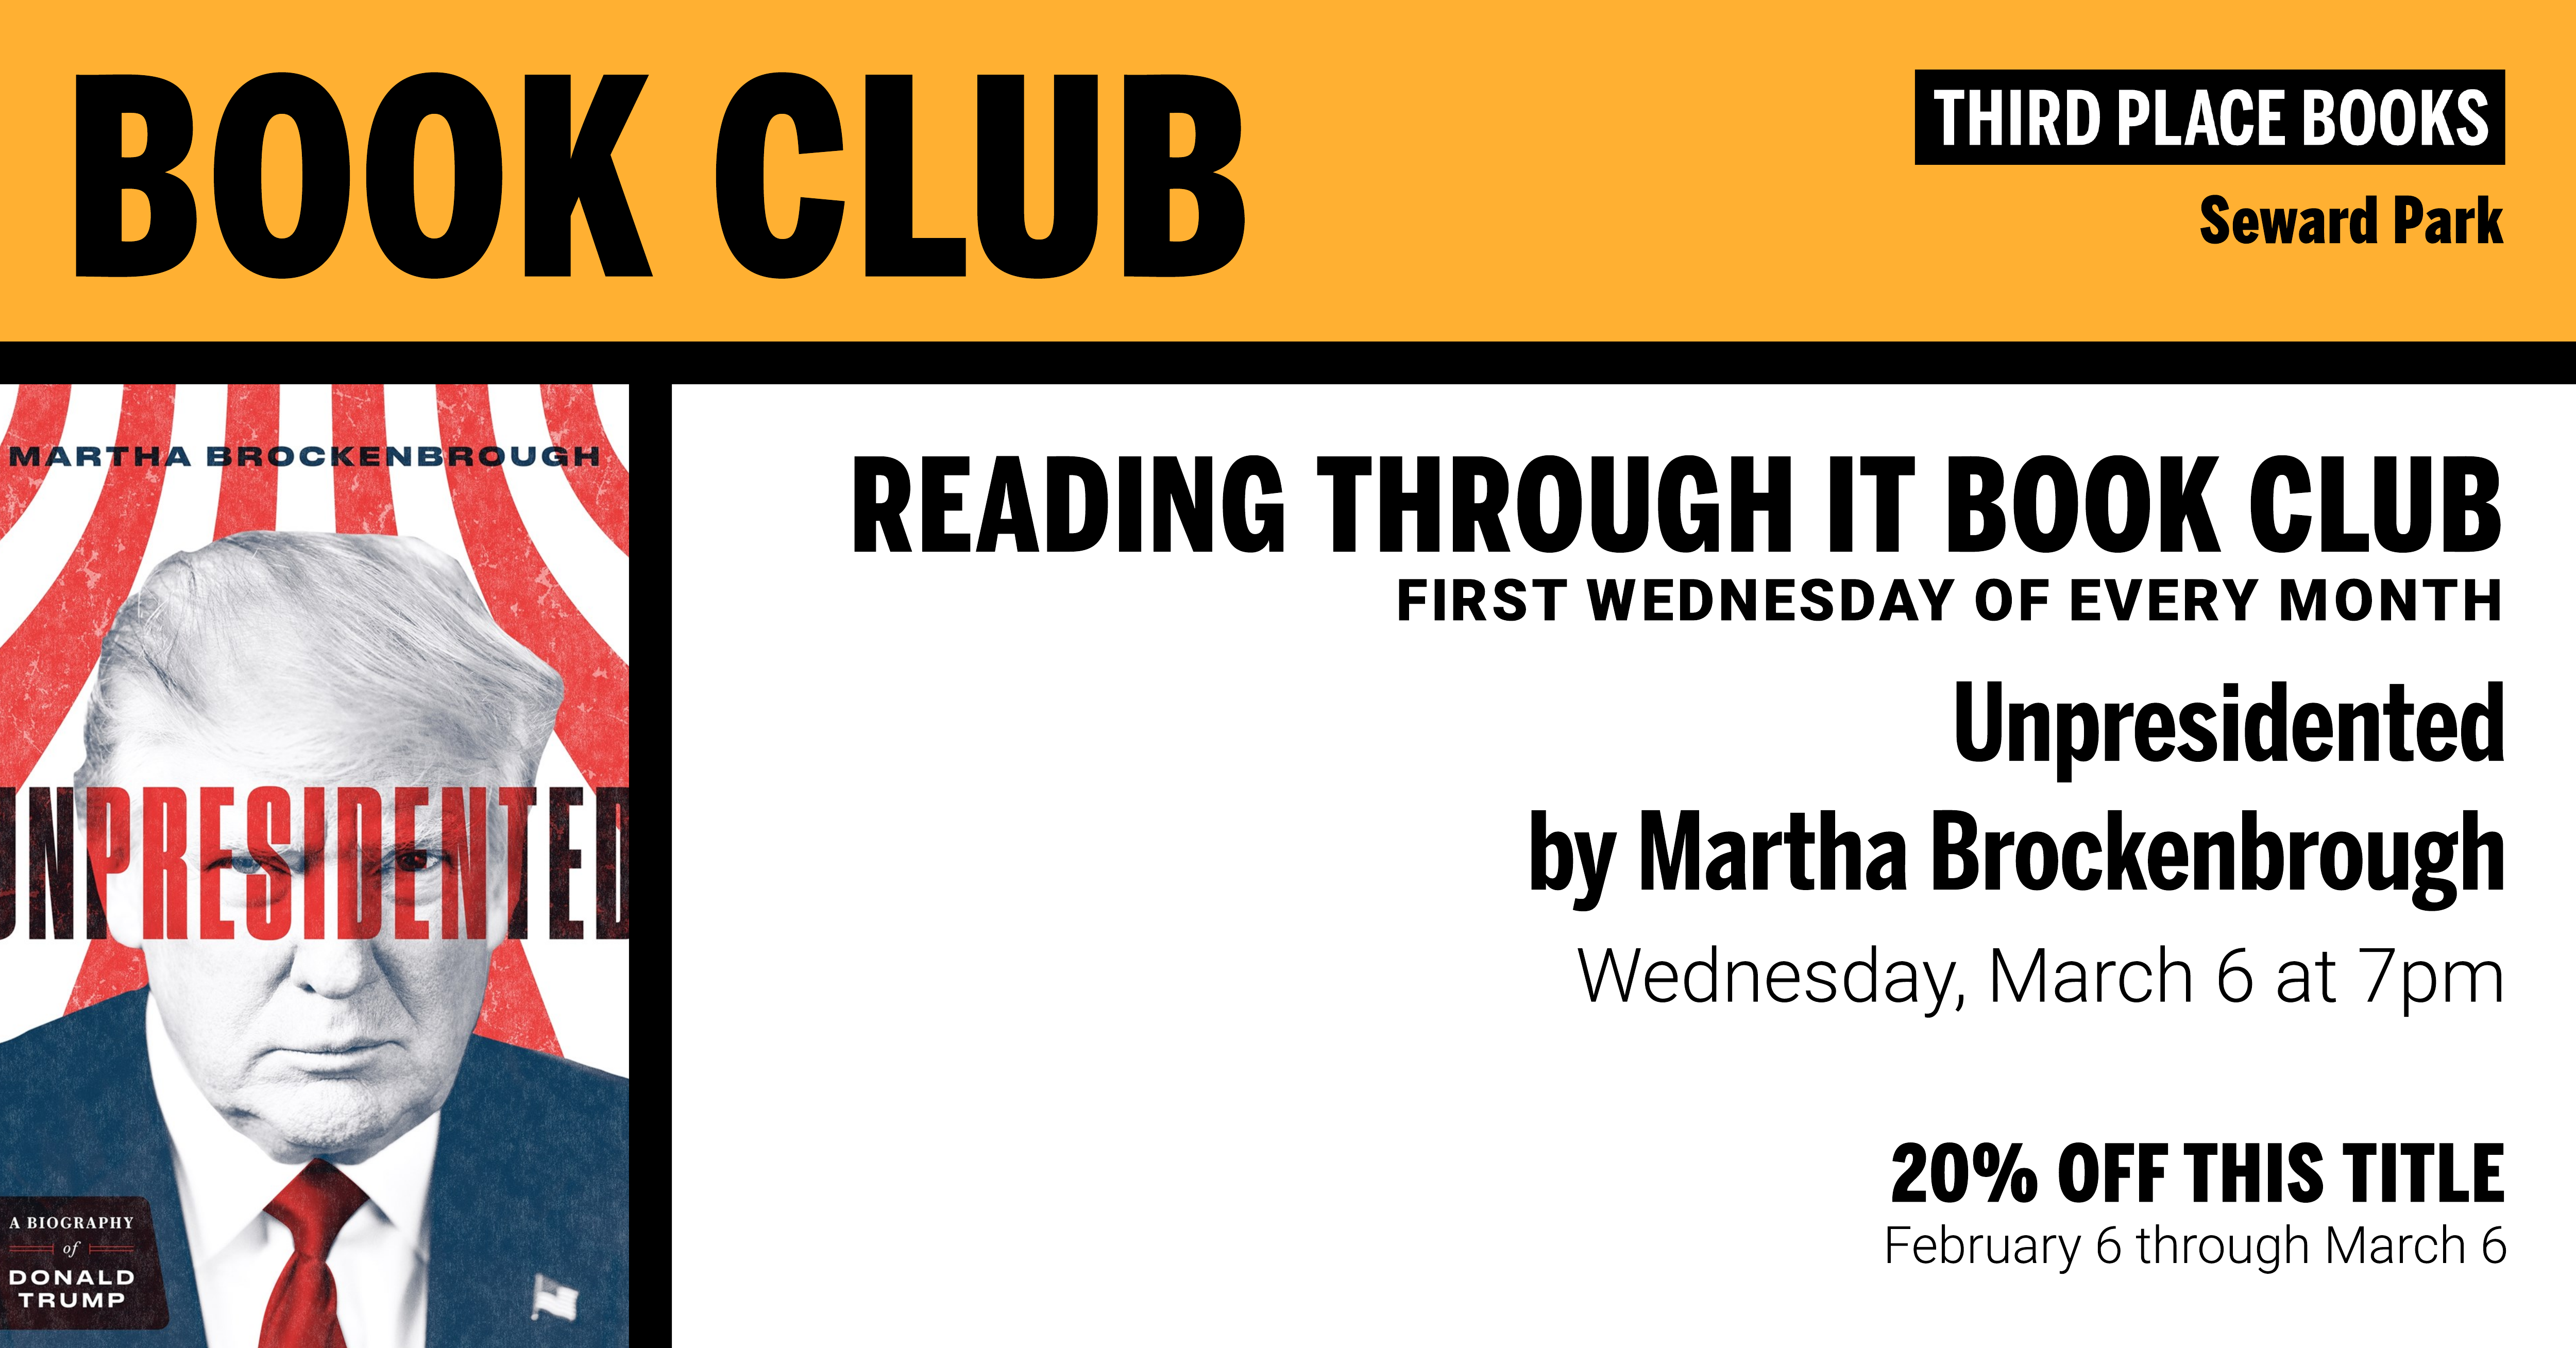 Reading Through It Book Club discussing Unpresidented by Martha Brockenbrough on Wednesday, March 6 at 7pm